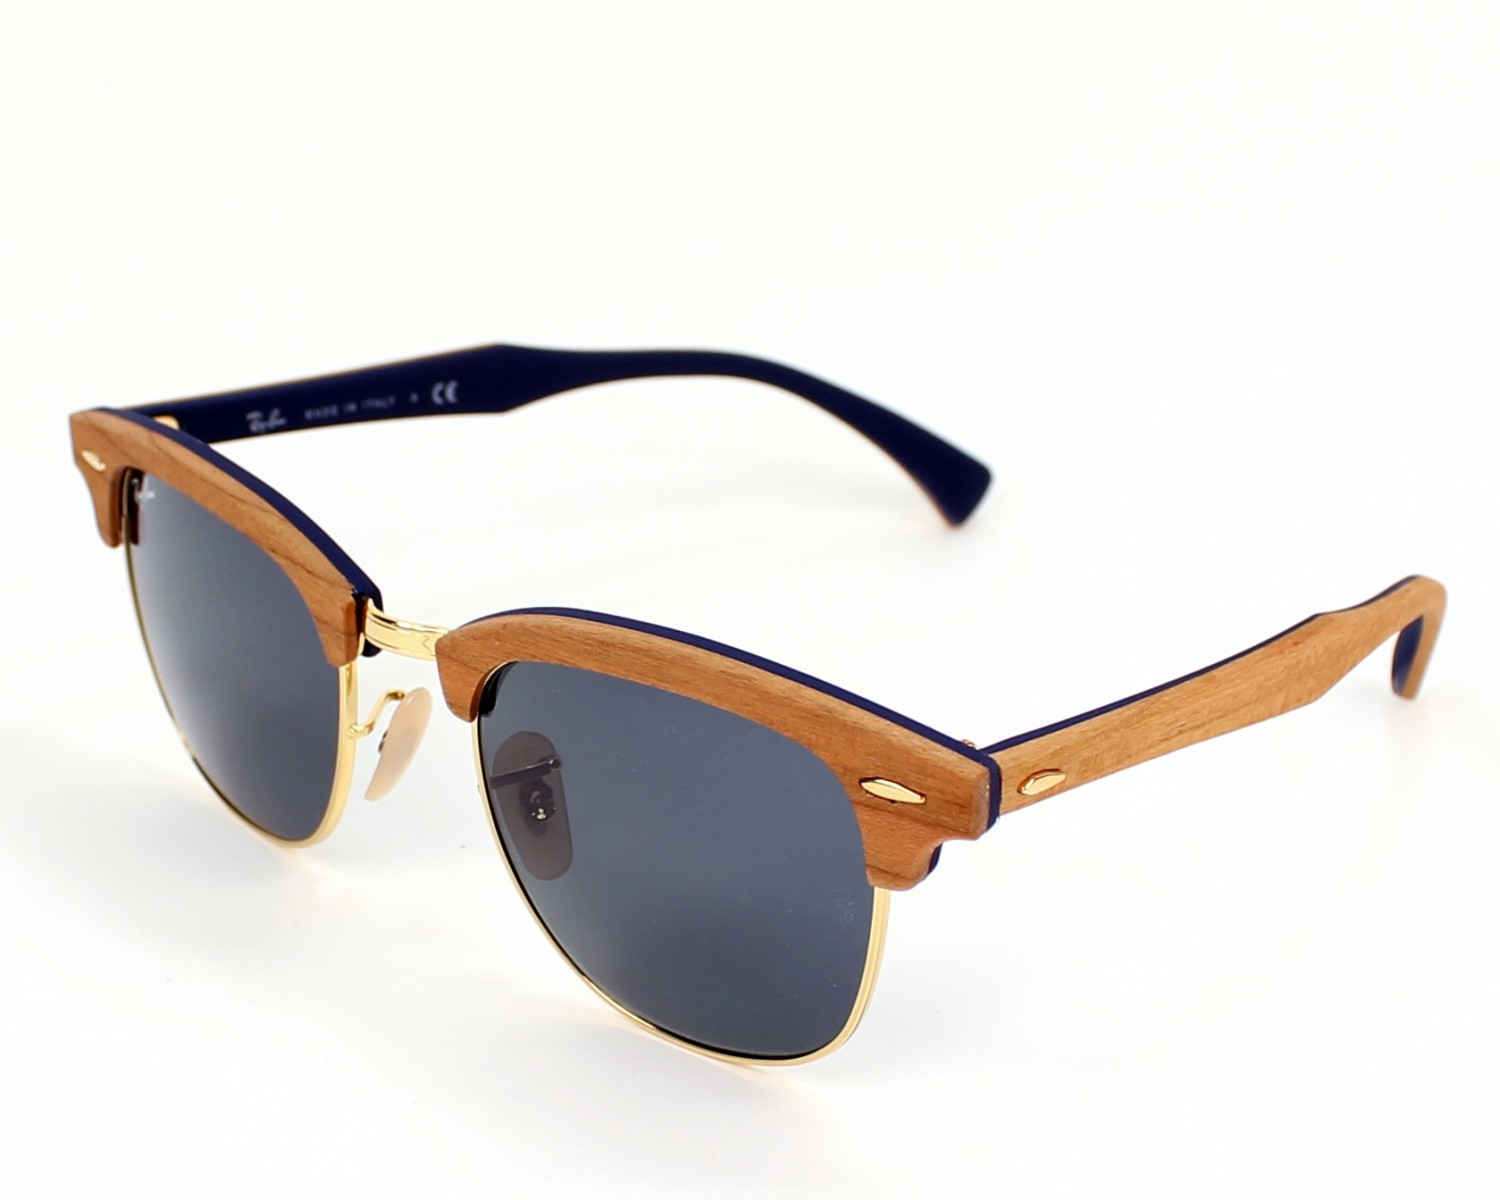 Ray-Ban RB3016M Sonnenbrille Holz / Gold 1180R5 51mm dcieE